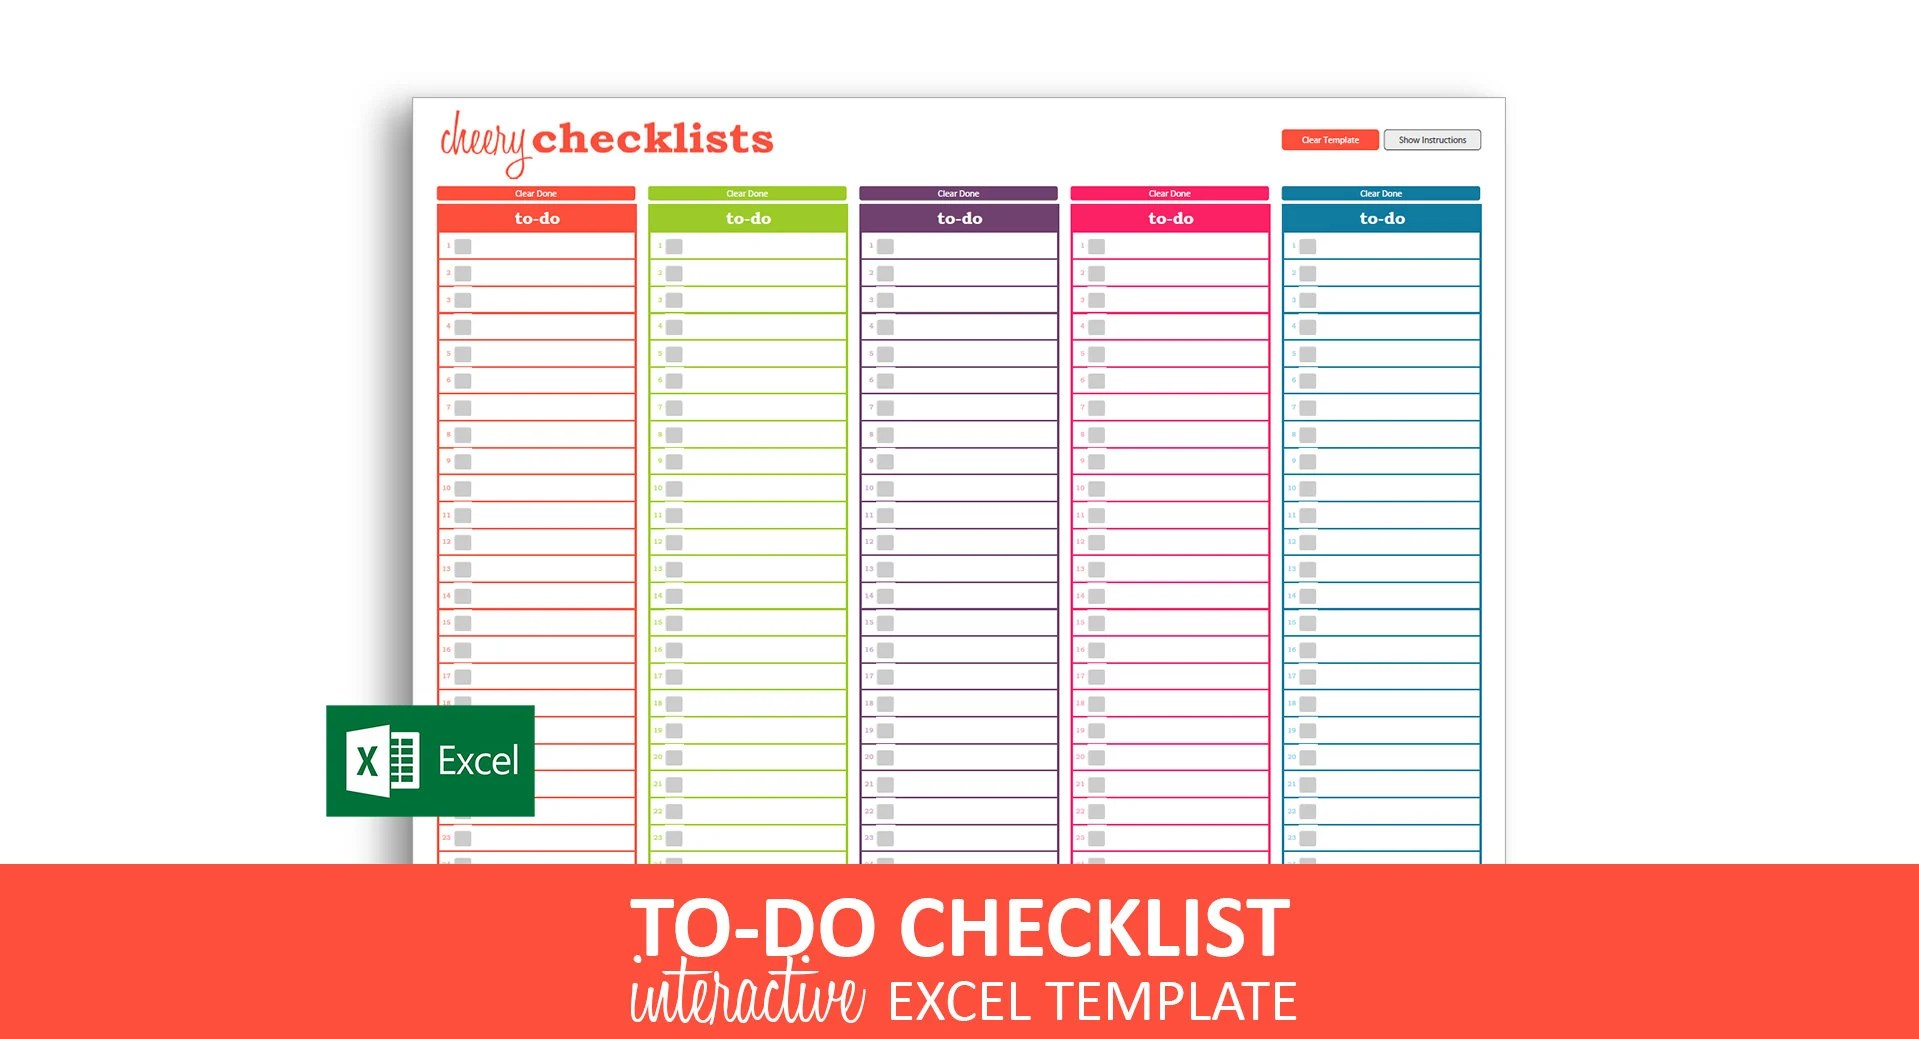 Cheery Checklists Excel Template Printable Checkable To Do Etsy